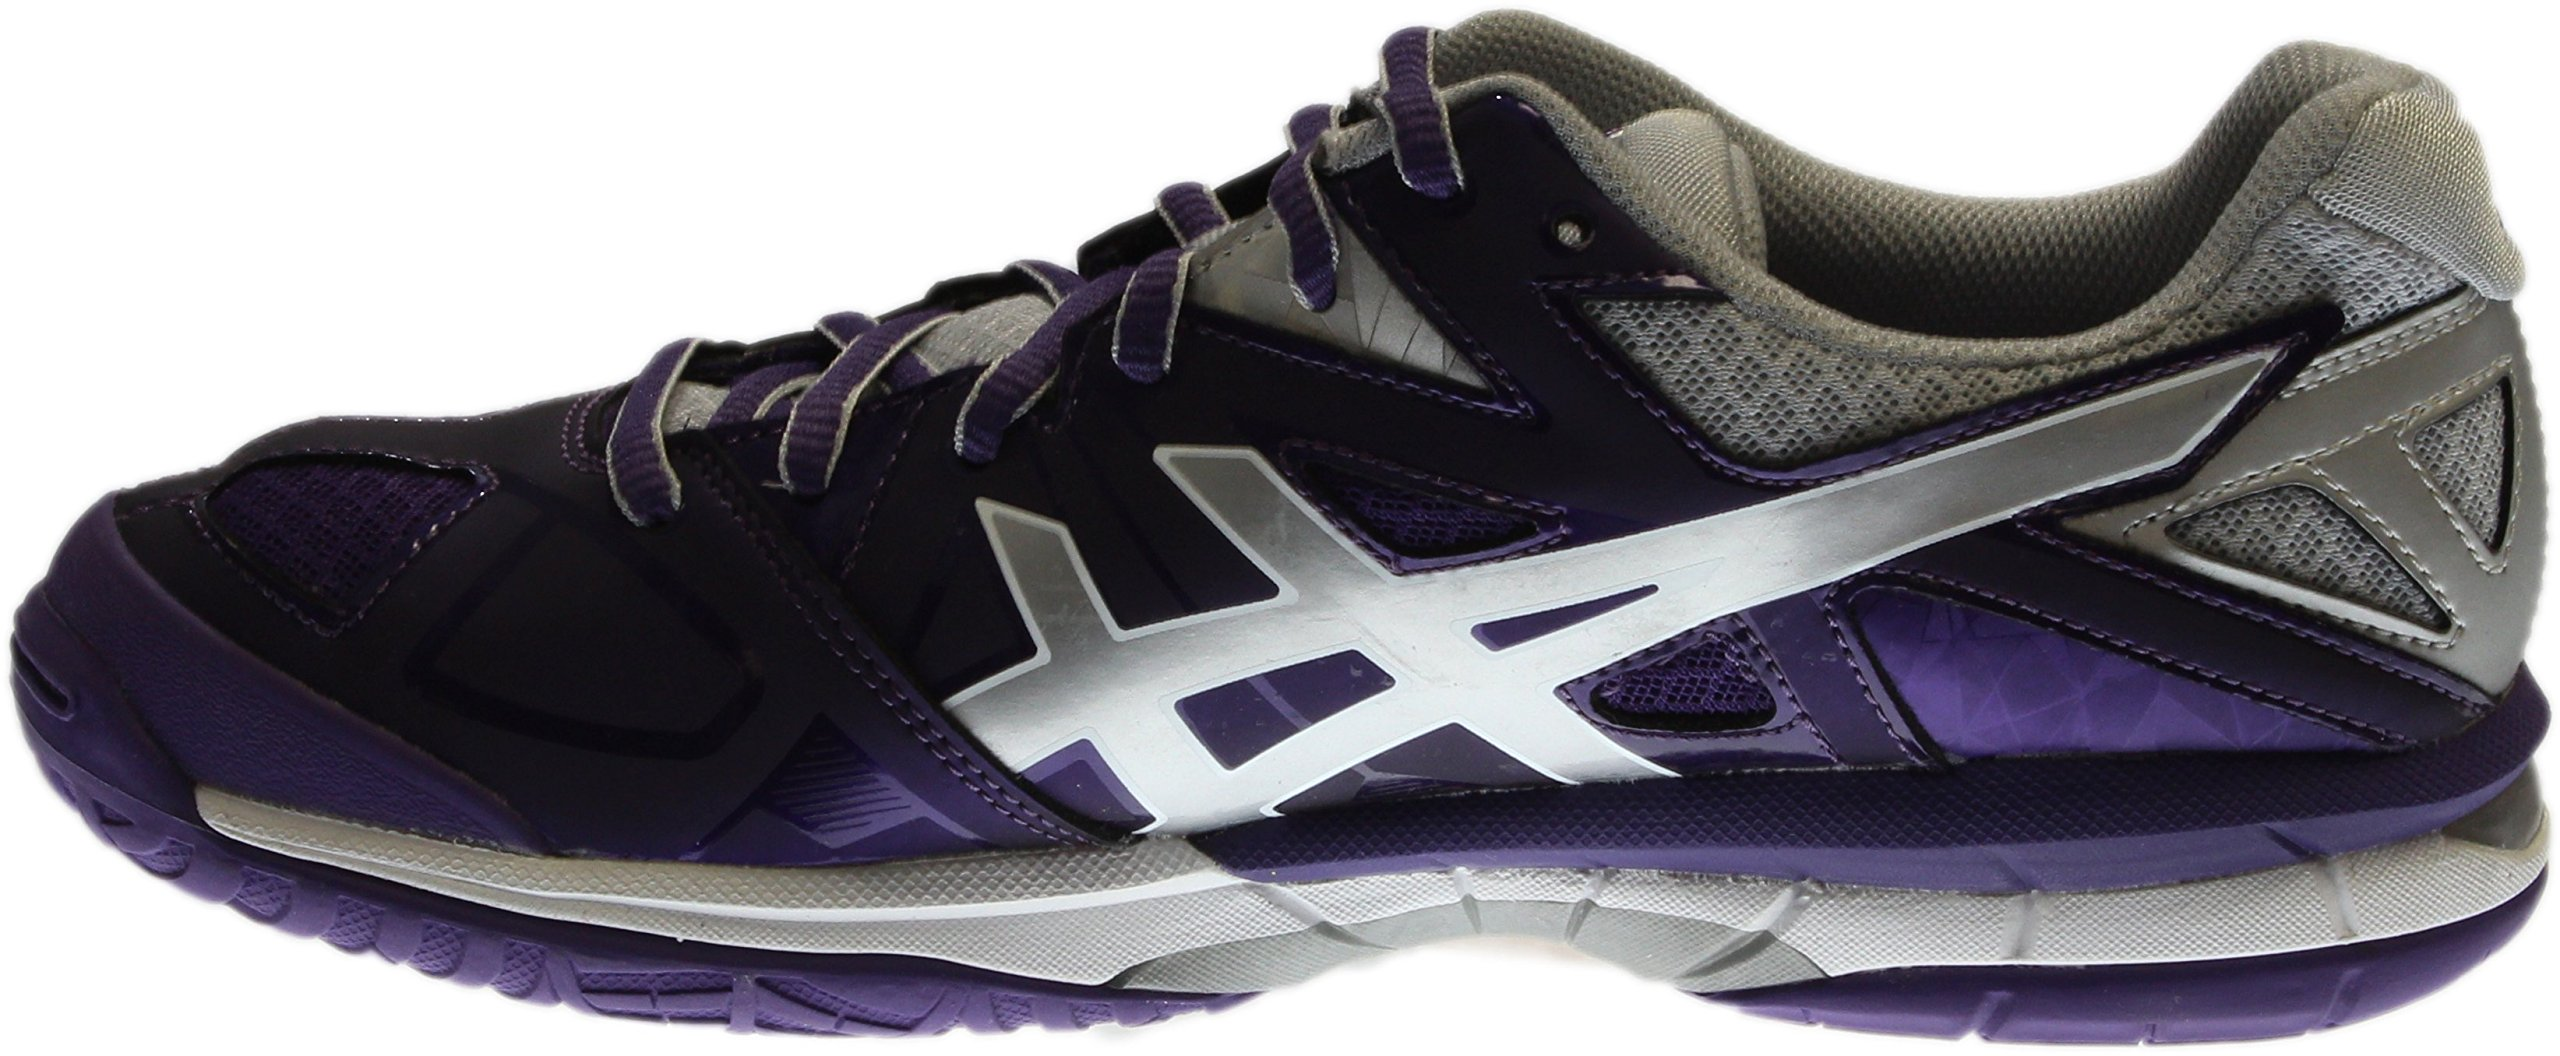 ASICS Women's Gel Tactic Volleyball Shoe, Purple/Silver/White, 9.5 M US by ASICS (Image #4)